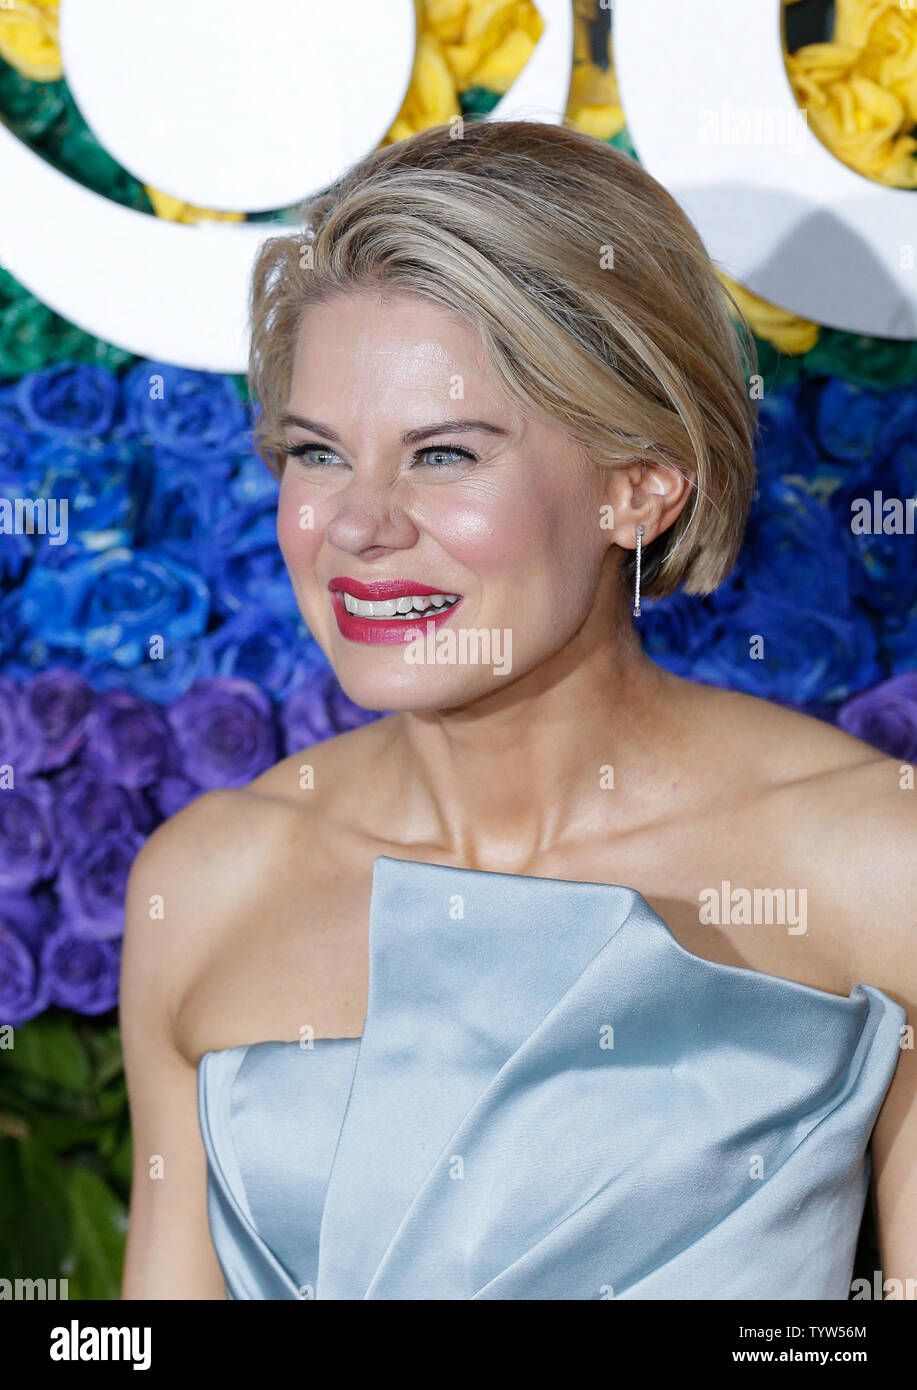 Celia Keenan-Bolger arrives on the red carpet at The 73rd Annual Tony Awards at Radio City Music Hall on June 9, 2019 in New York City.   Photo by John Angelillo/UPI - Stock Image